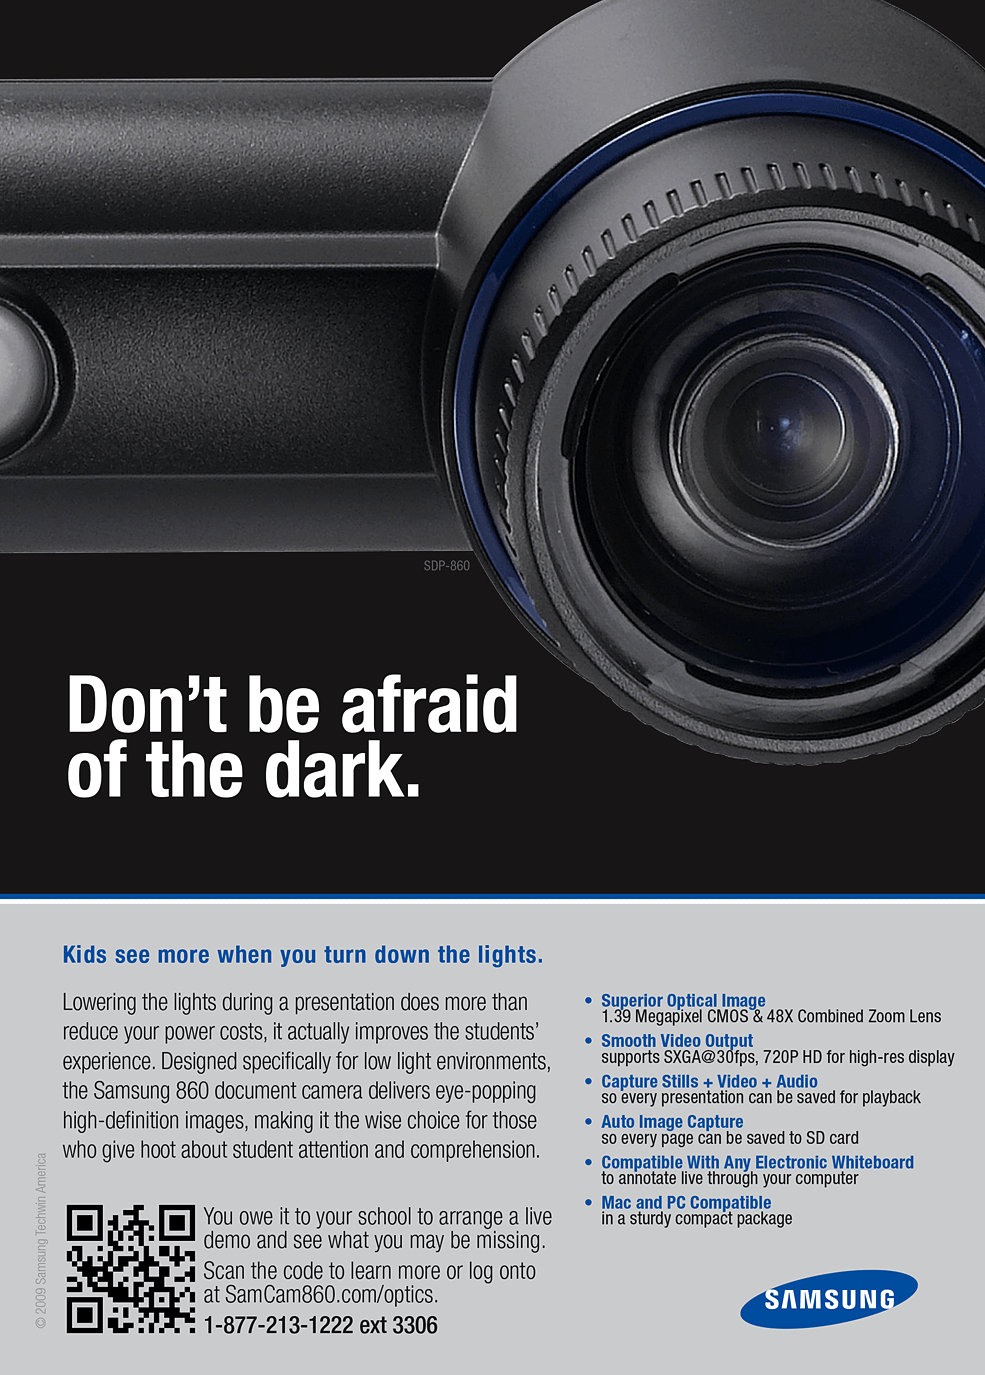 Samsung - Don't be afraid of the dark.